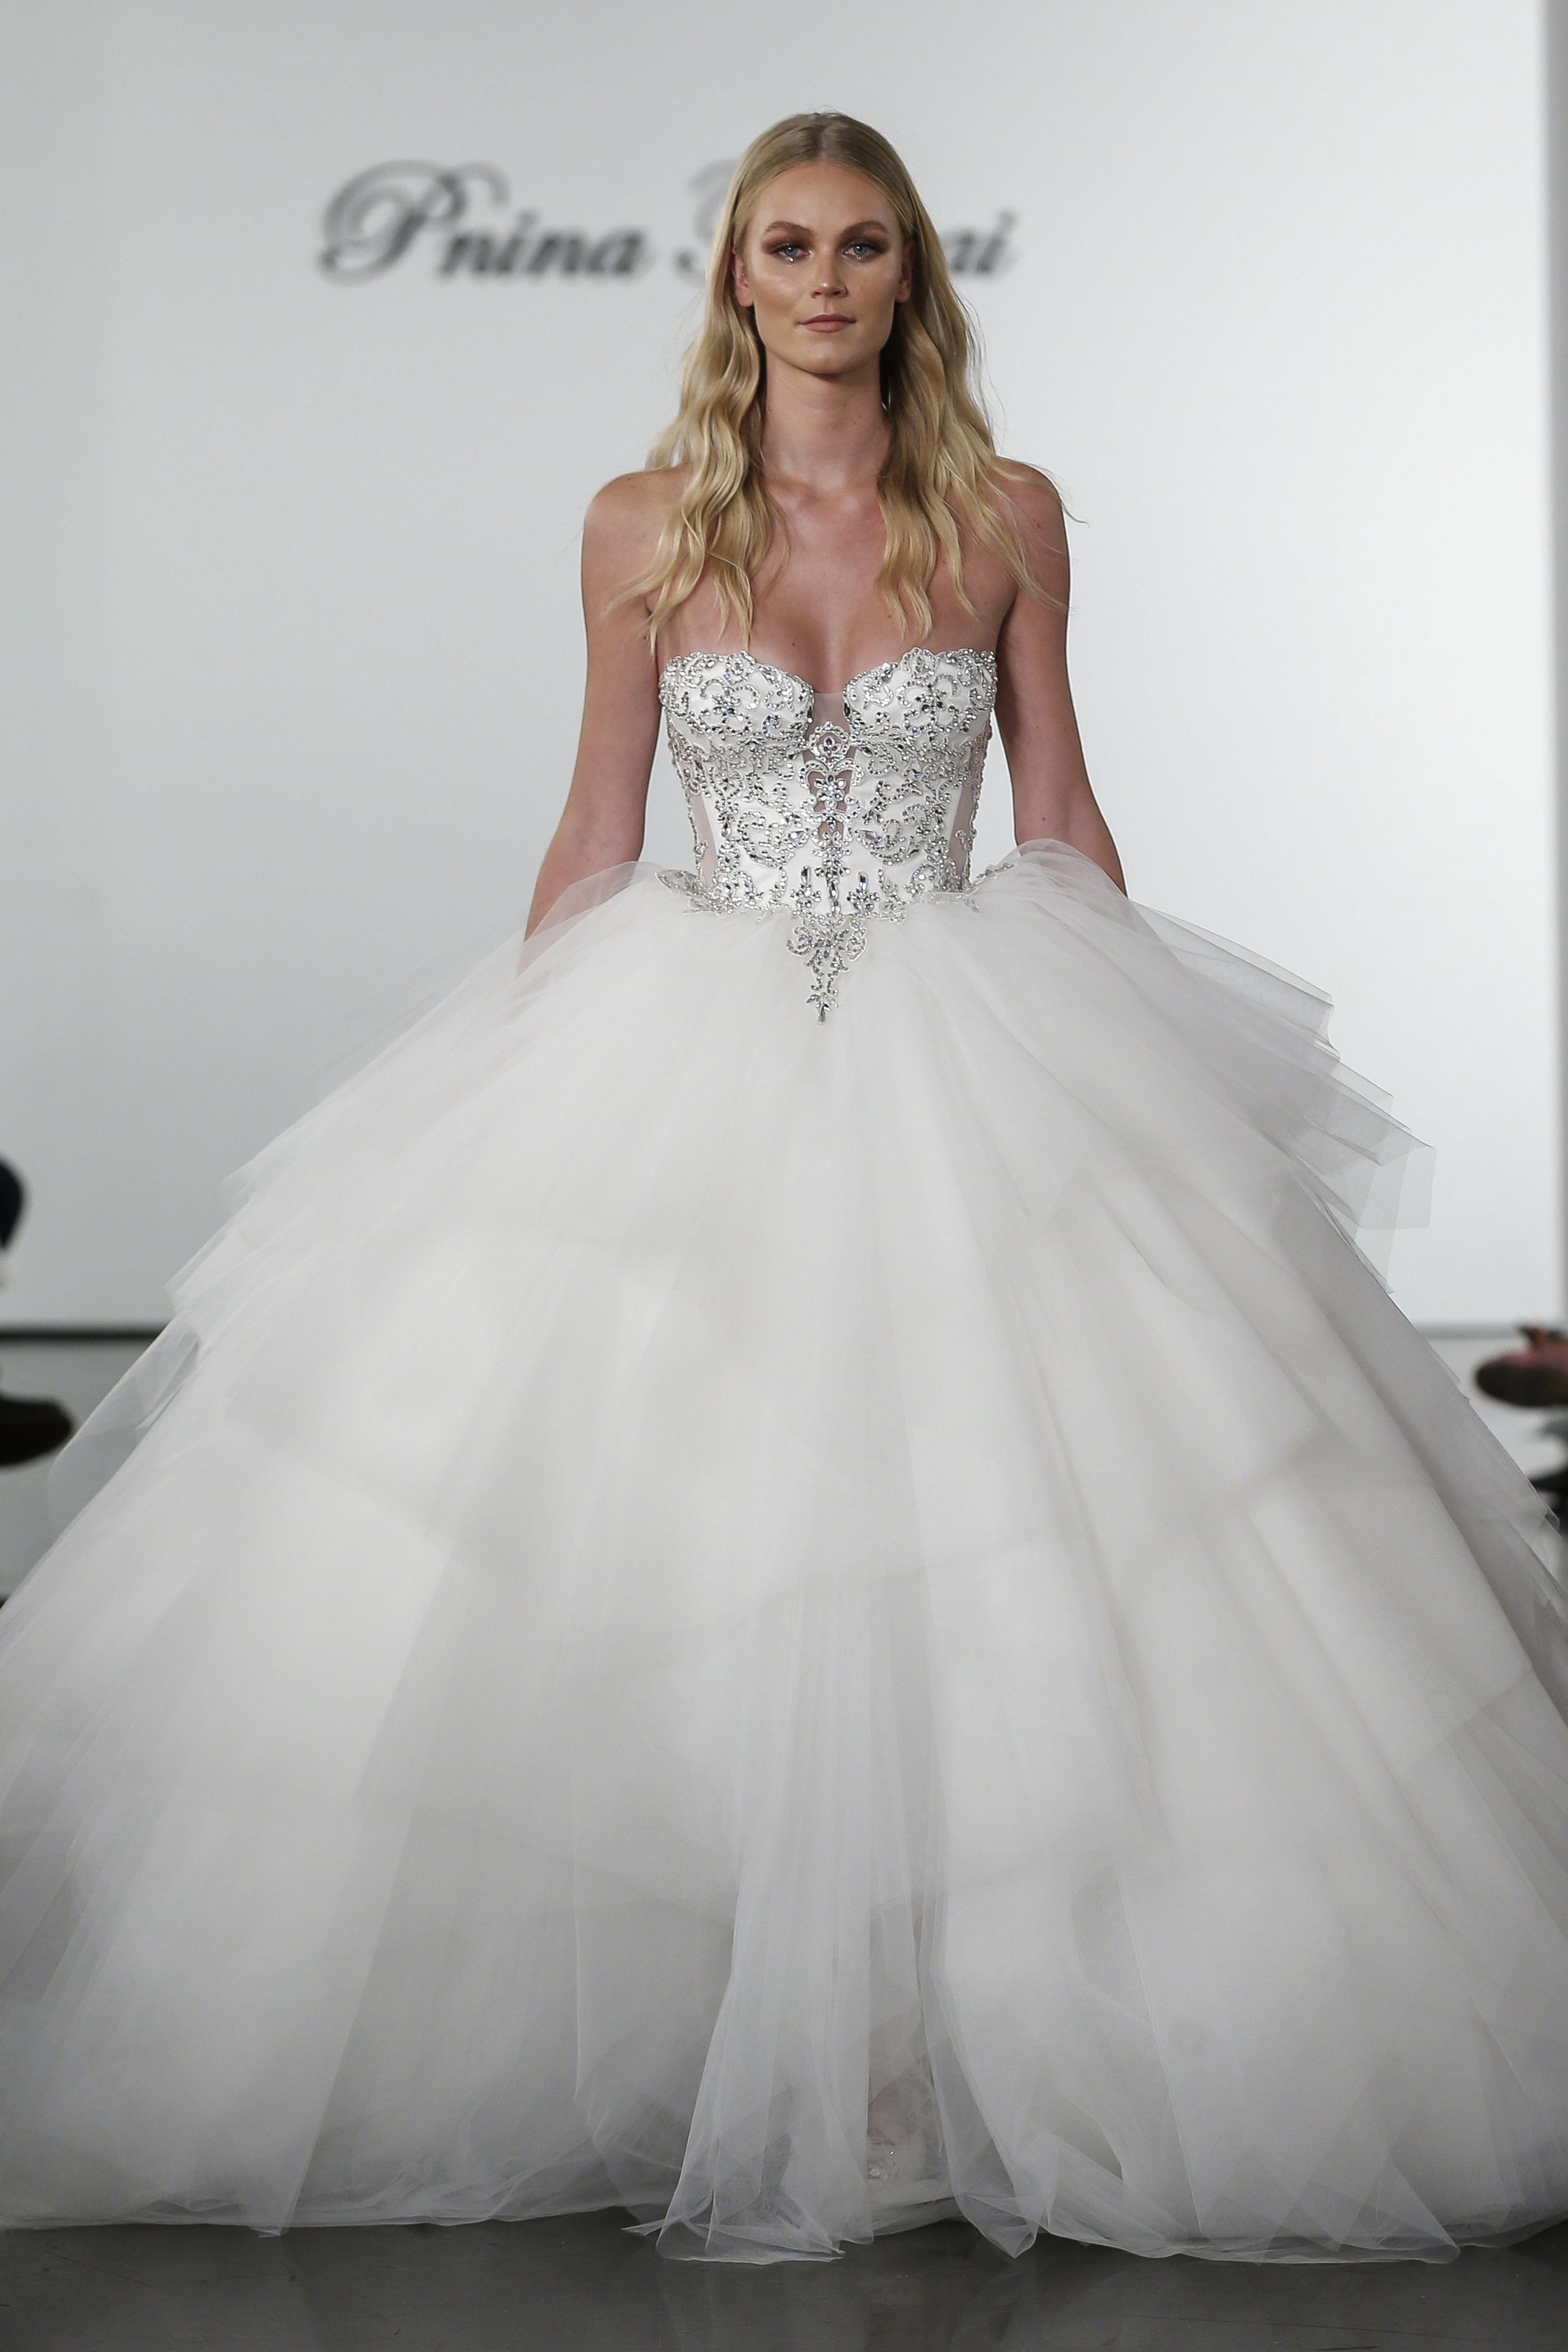 Layered Tulle Ball Gown Wedding Dress With Crystal Embellished